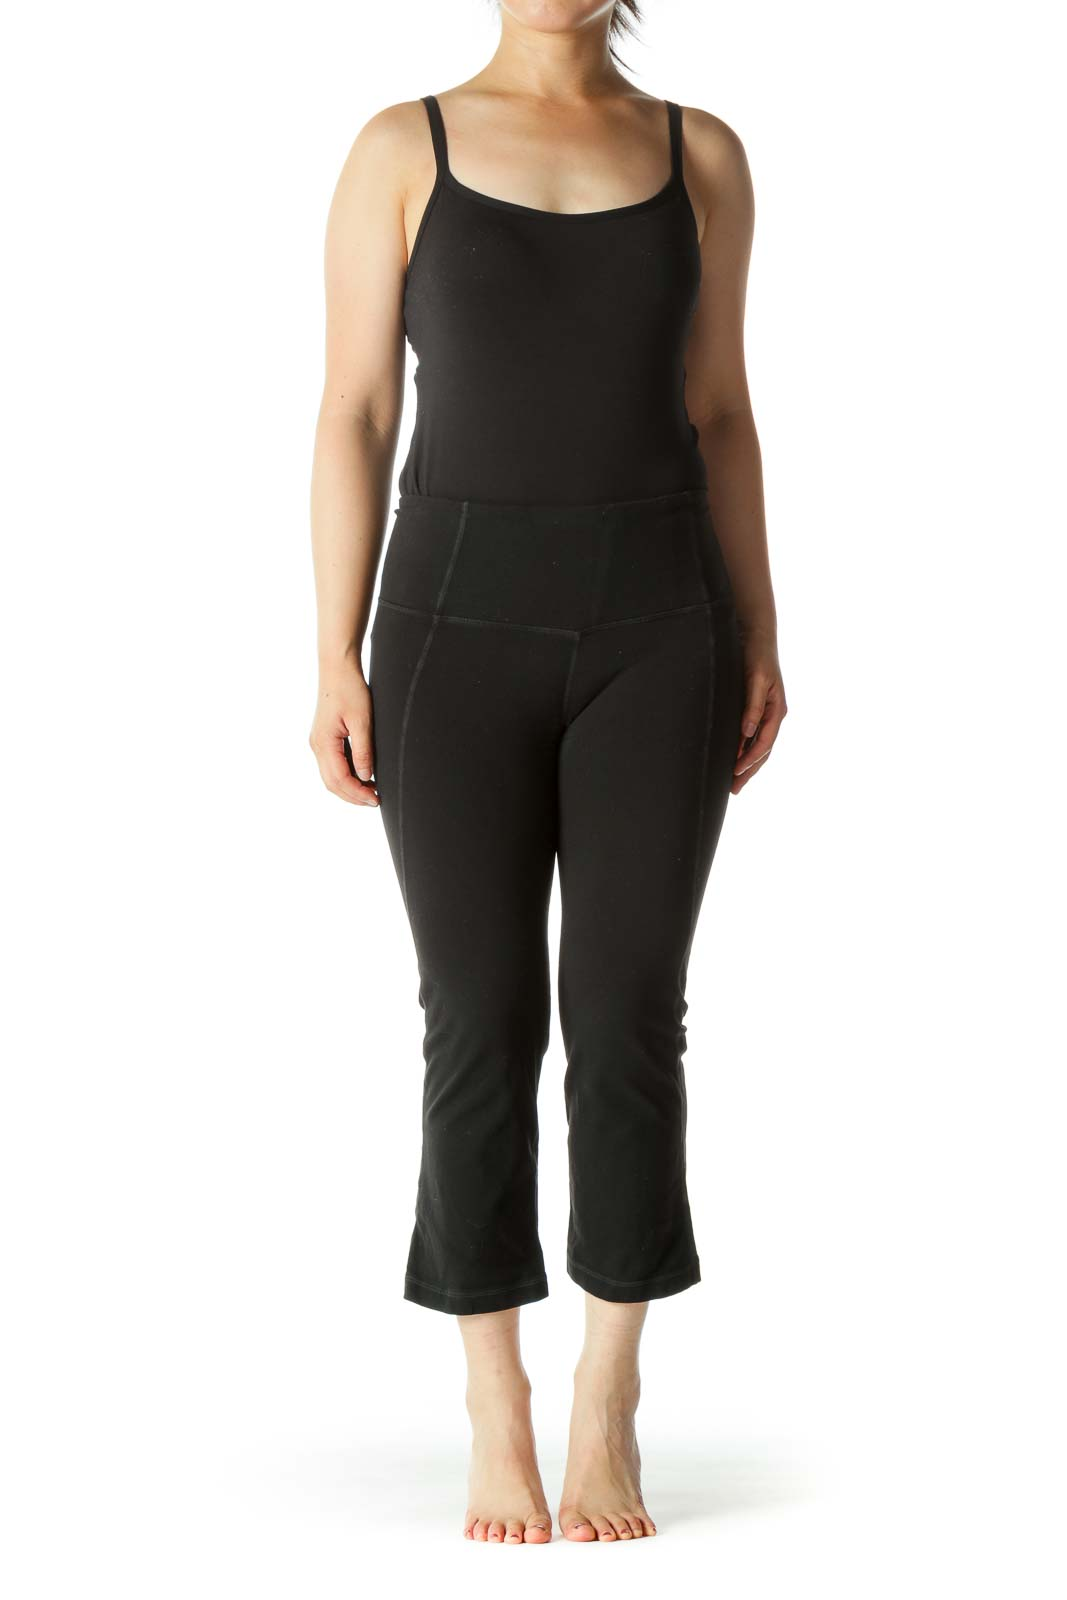 Black Leg Opening Upper Back Scrunch Detail Cropped Active Pants